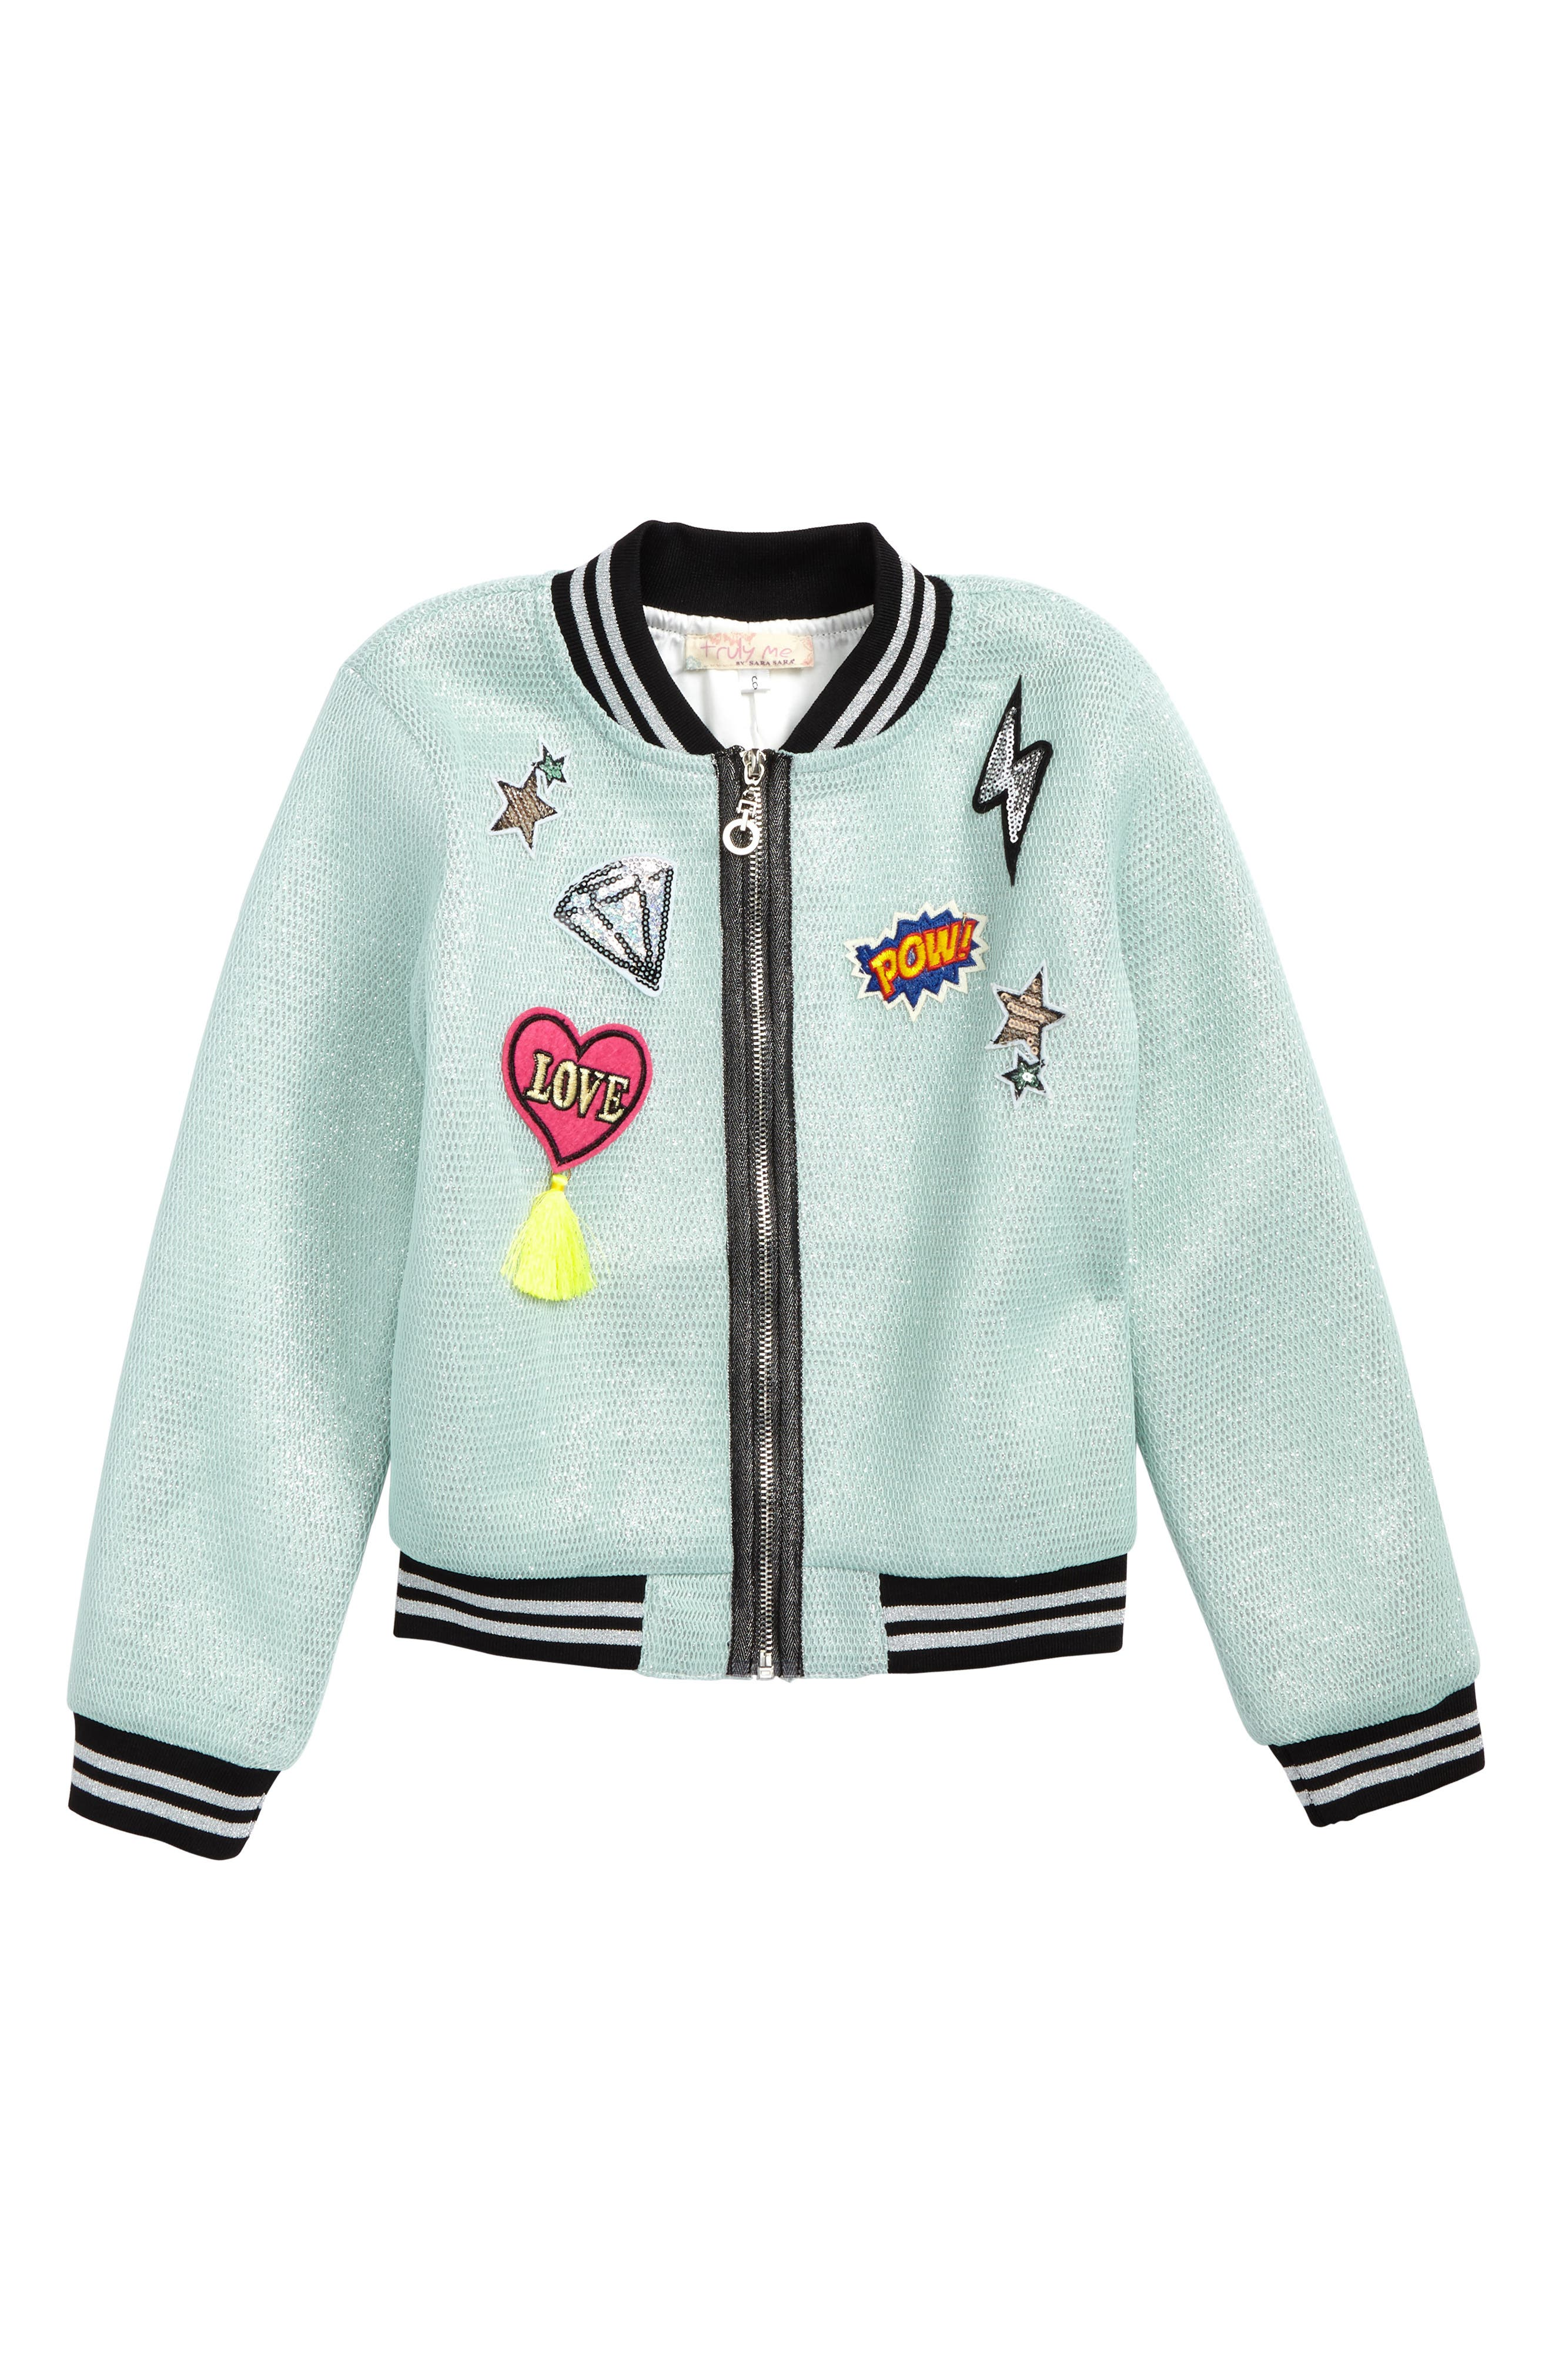 Main Image - Truly Me Patches Mesh Bomber Jacket (Toddler Girls & Little Girls)